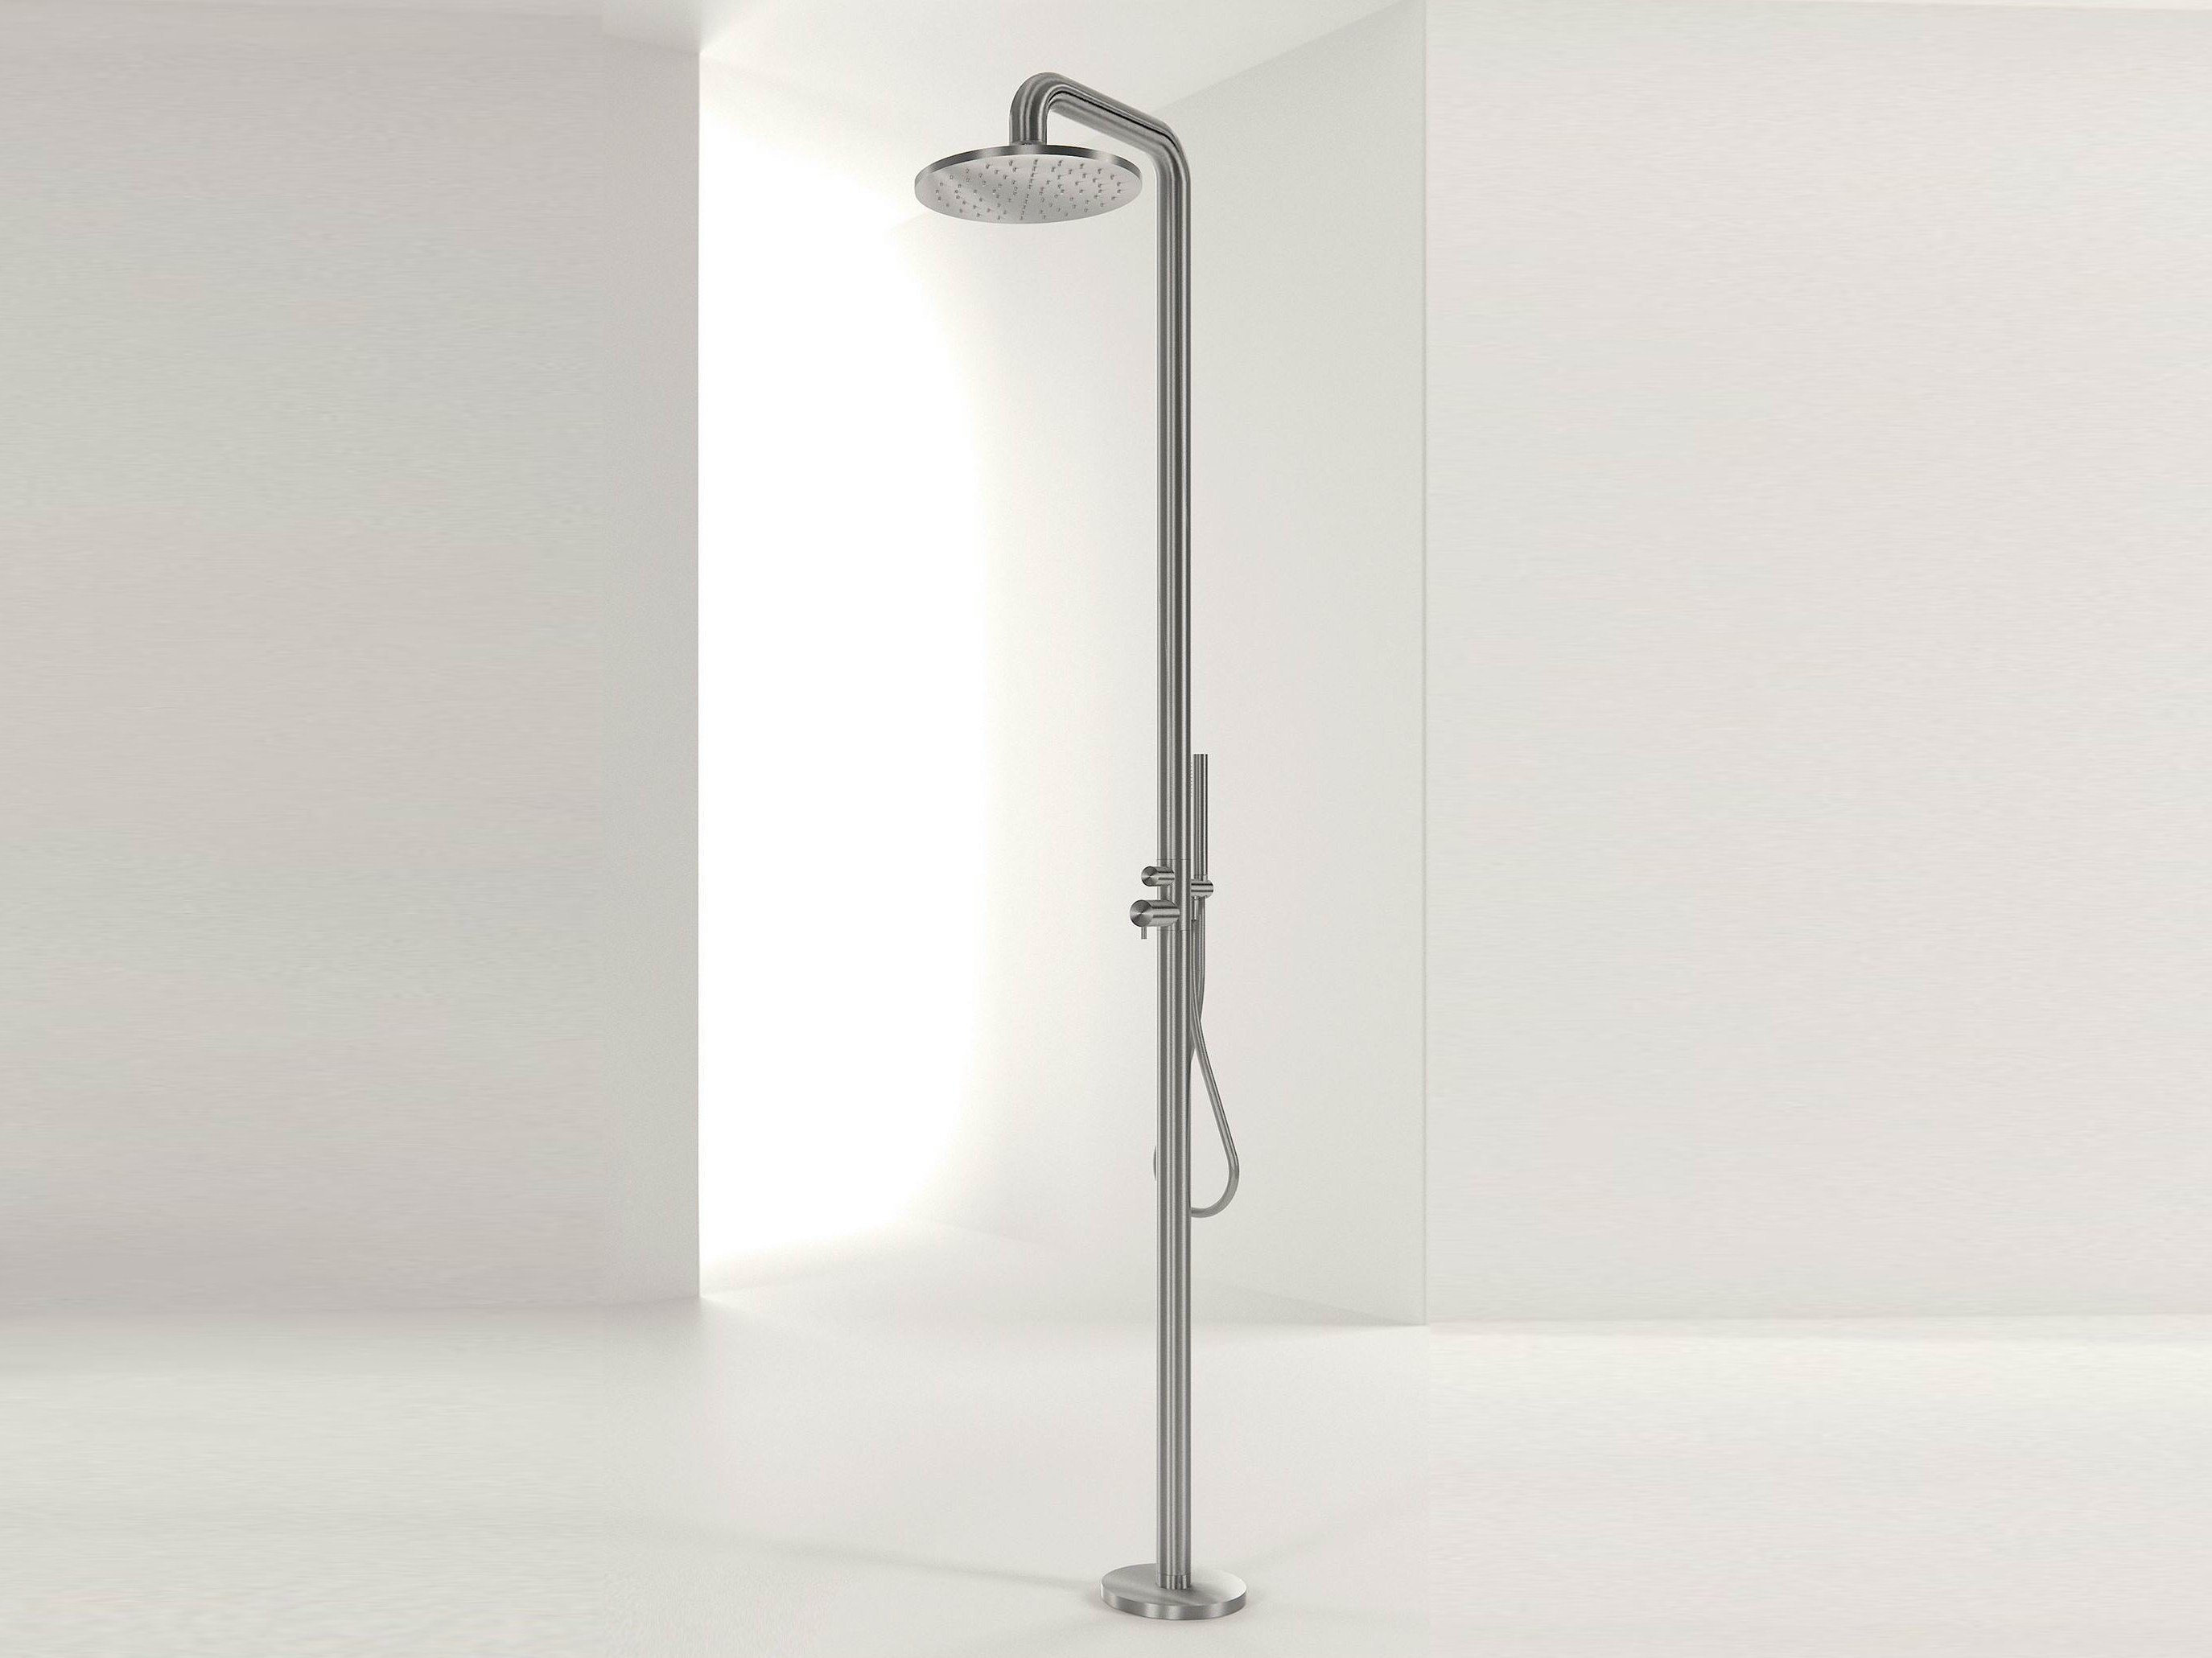 Diametro35 Inox Colonne De Douche Fixation Au Sol By Rubinetterie Ritmonio Design Davide Vercelli